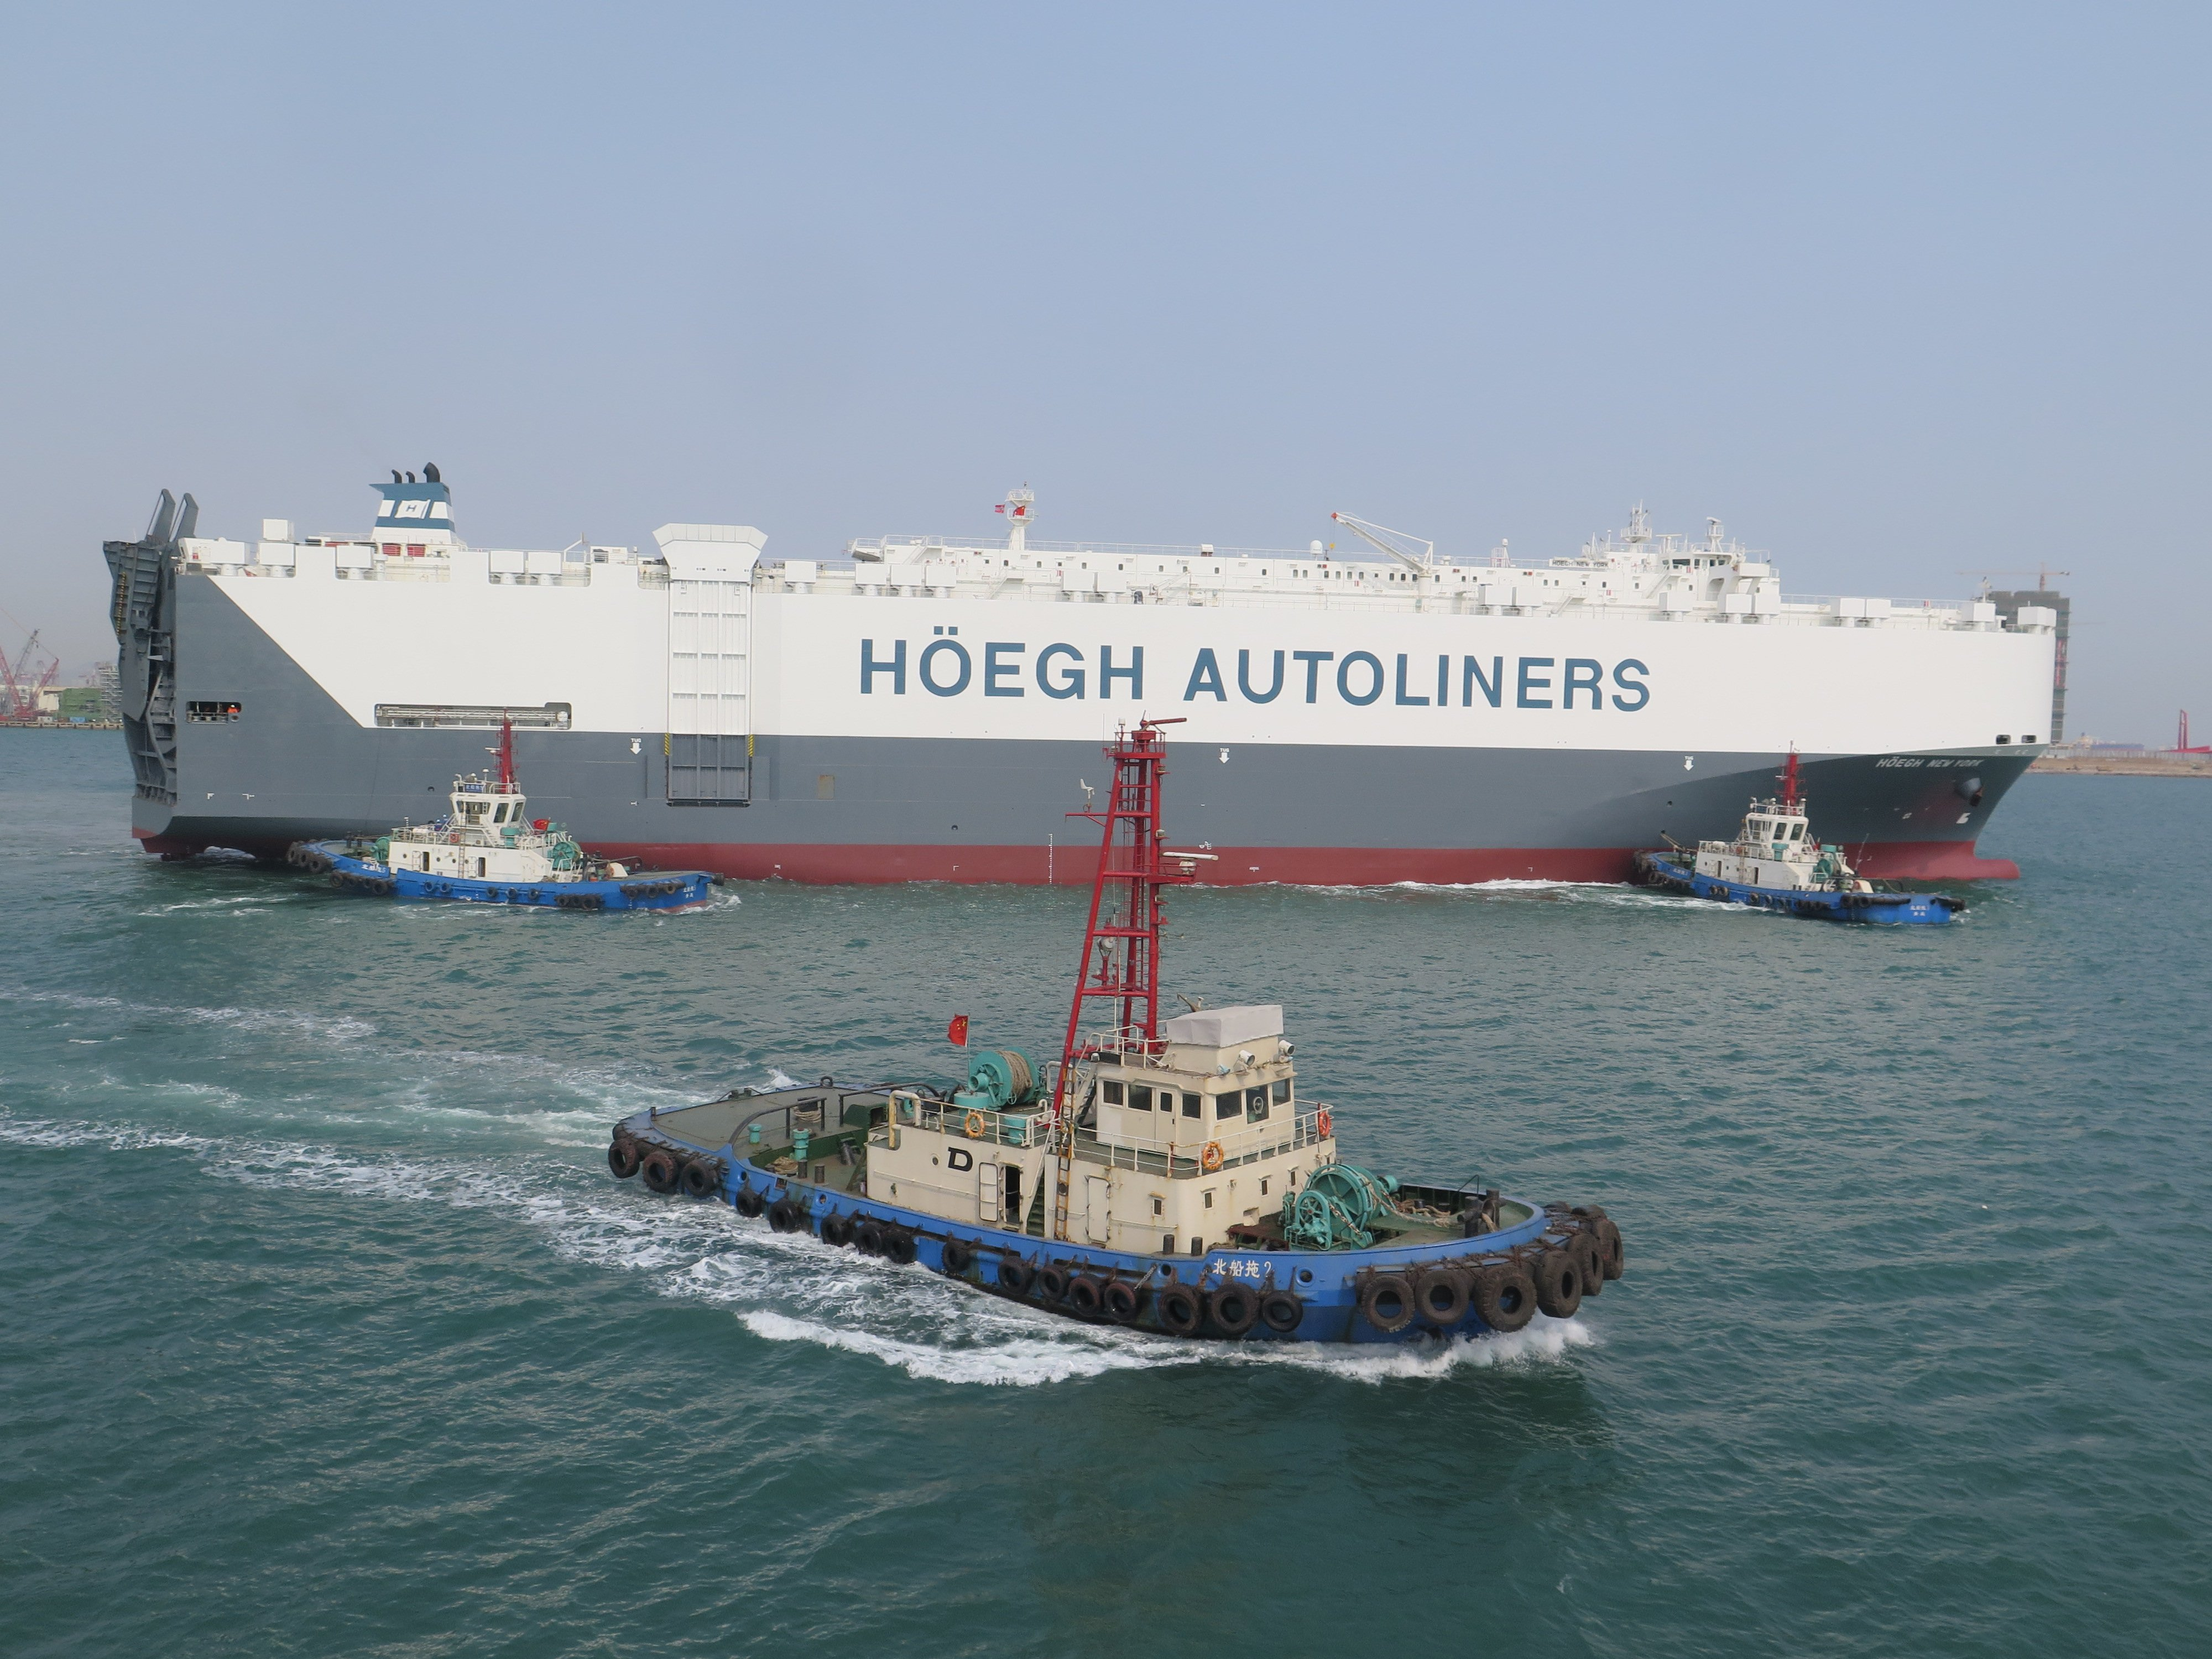 Höegh New York being escorted by tugs on her way out of the dock.